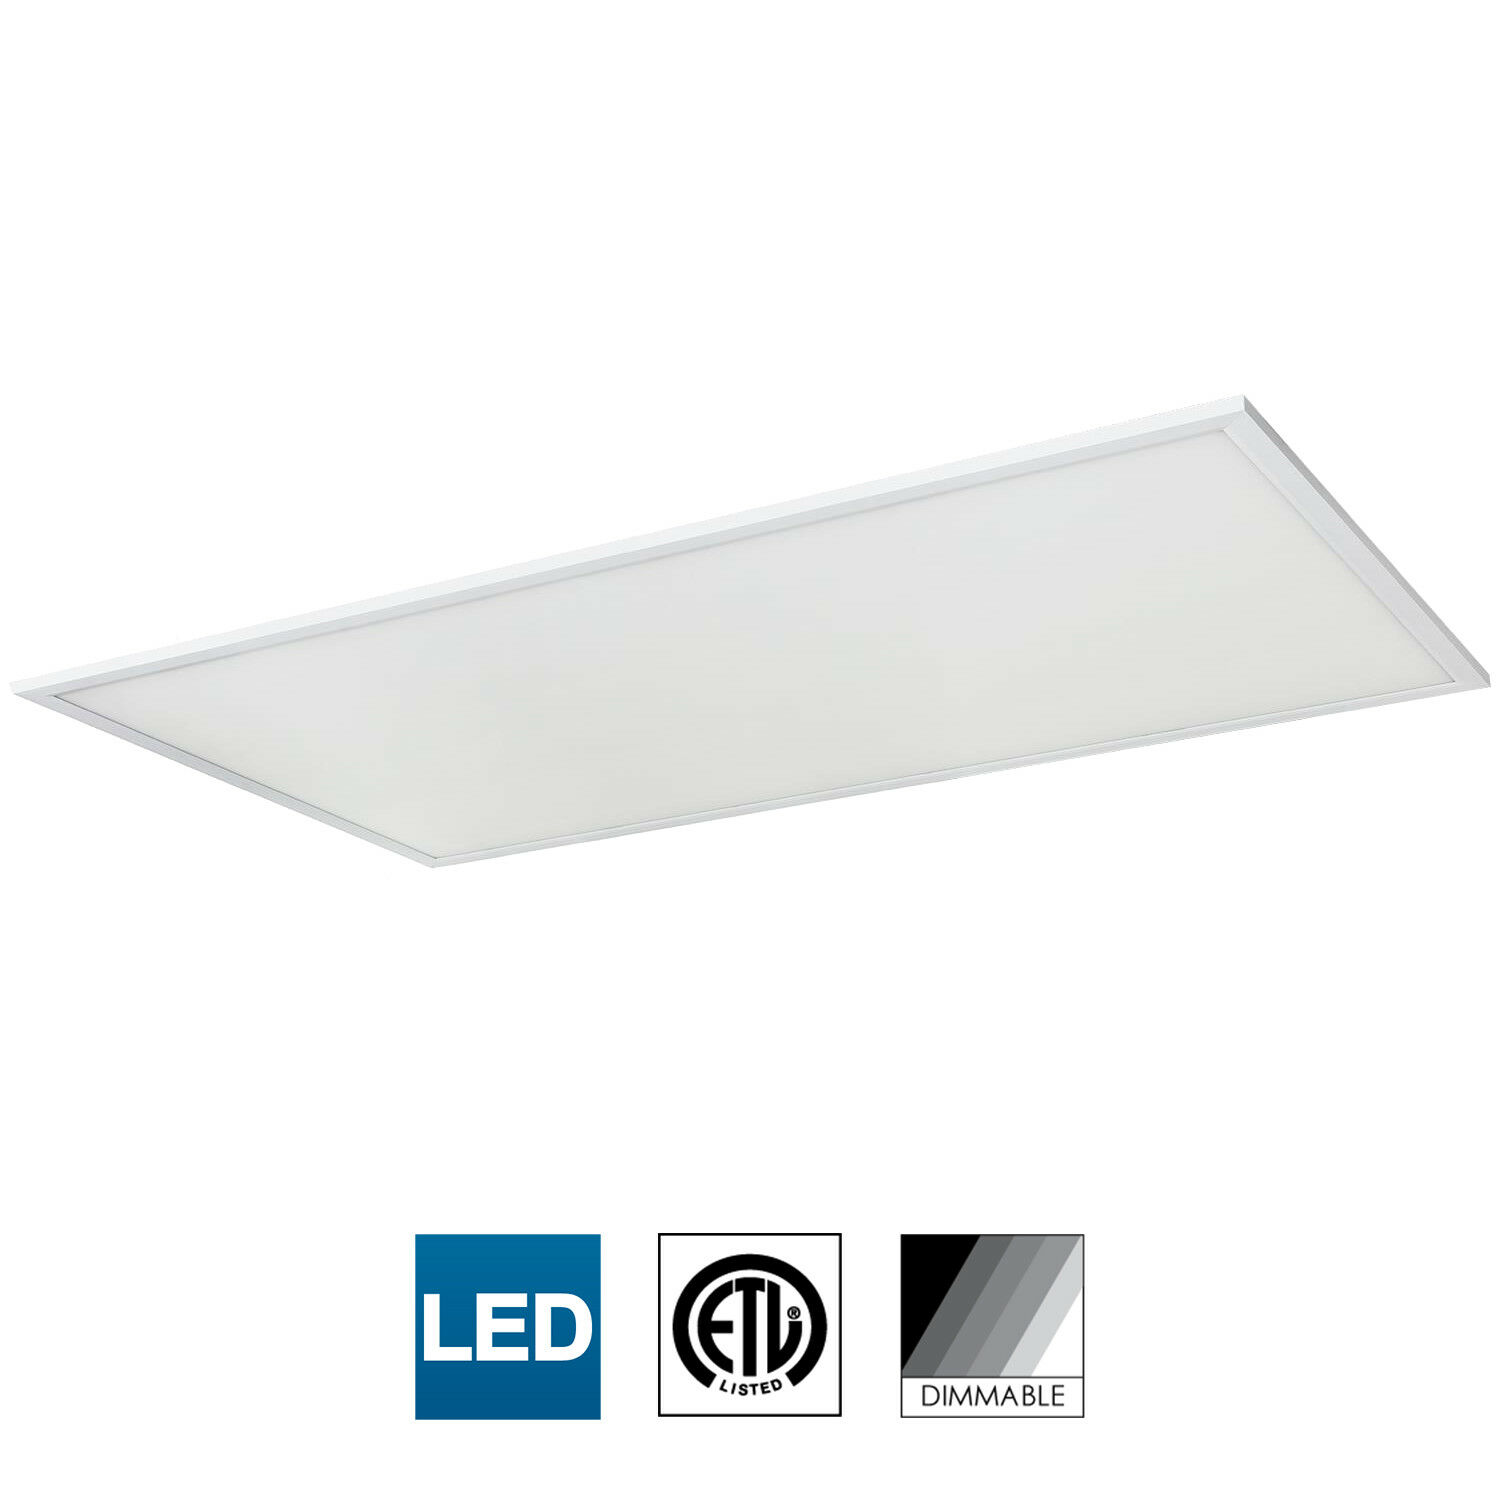 Sunlite panel de luz LED, Pie de 1x2, 24W, 3500K blancoo Cálido, Regulable